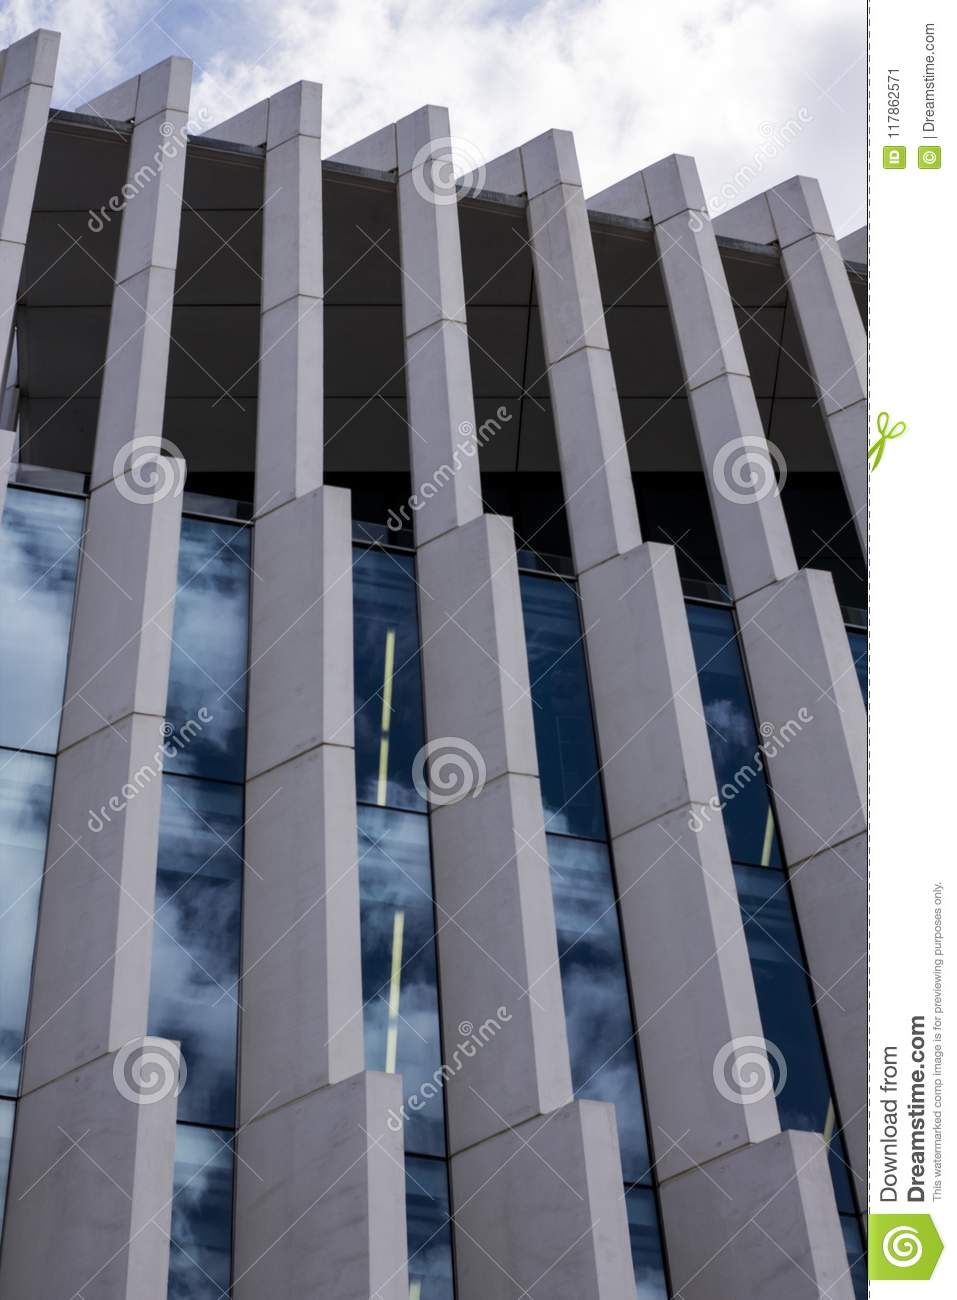 Modern architectural glass structure with reflections